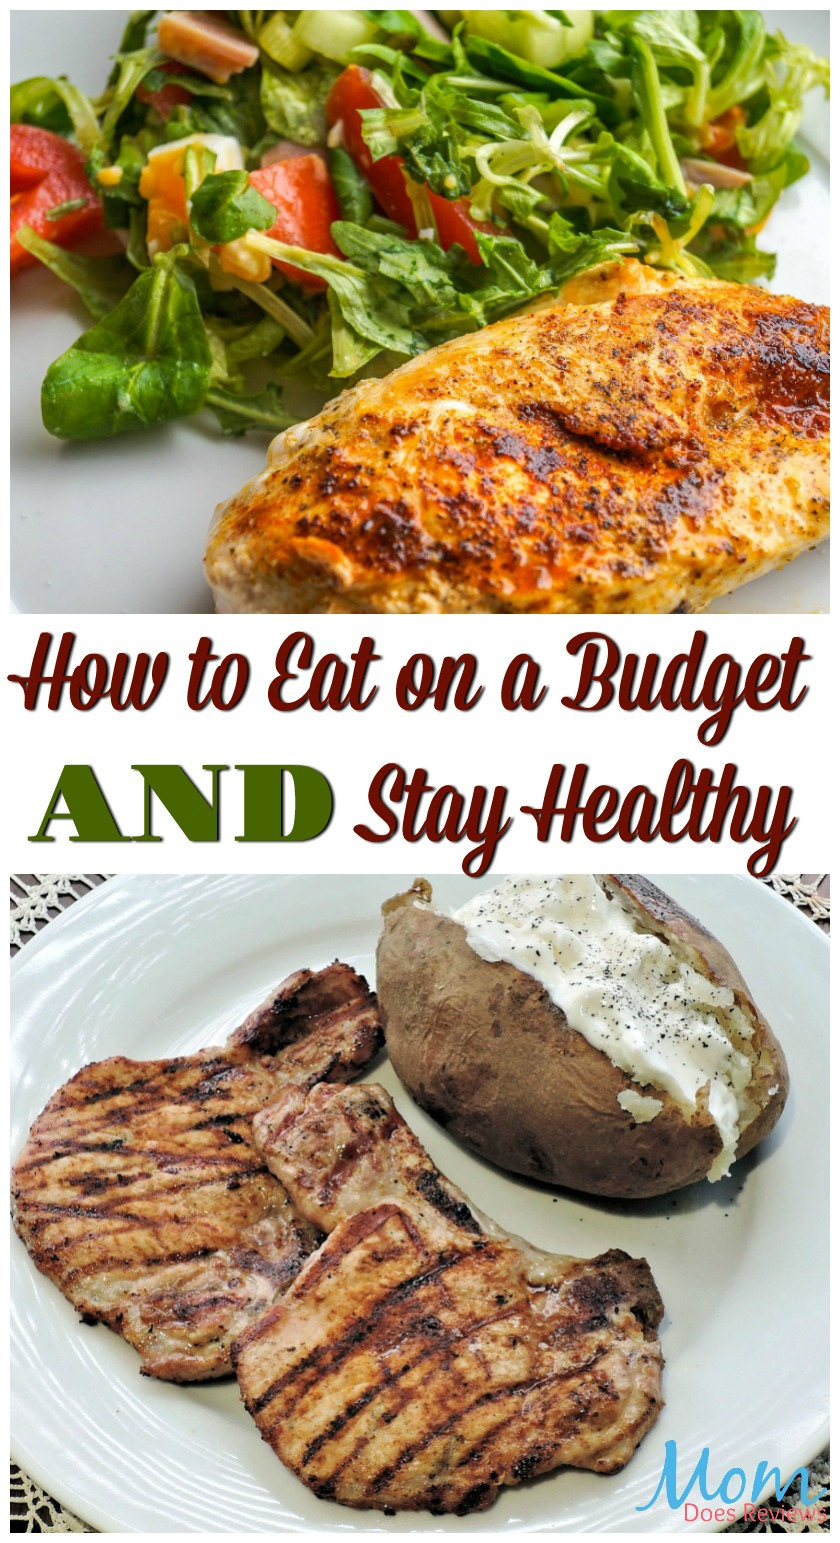 How to Eat on a Budget and Stay Healthy #food #healthy #healthyliving #eathealthy #budget #freshfood